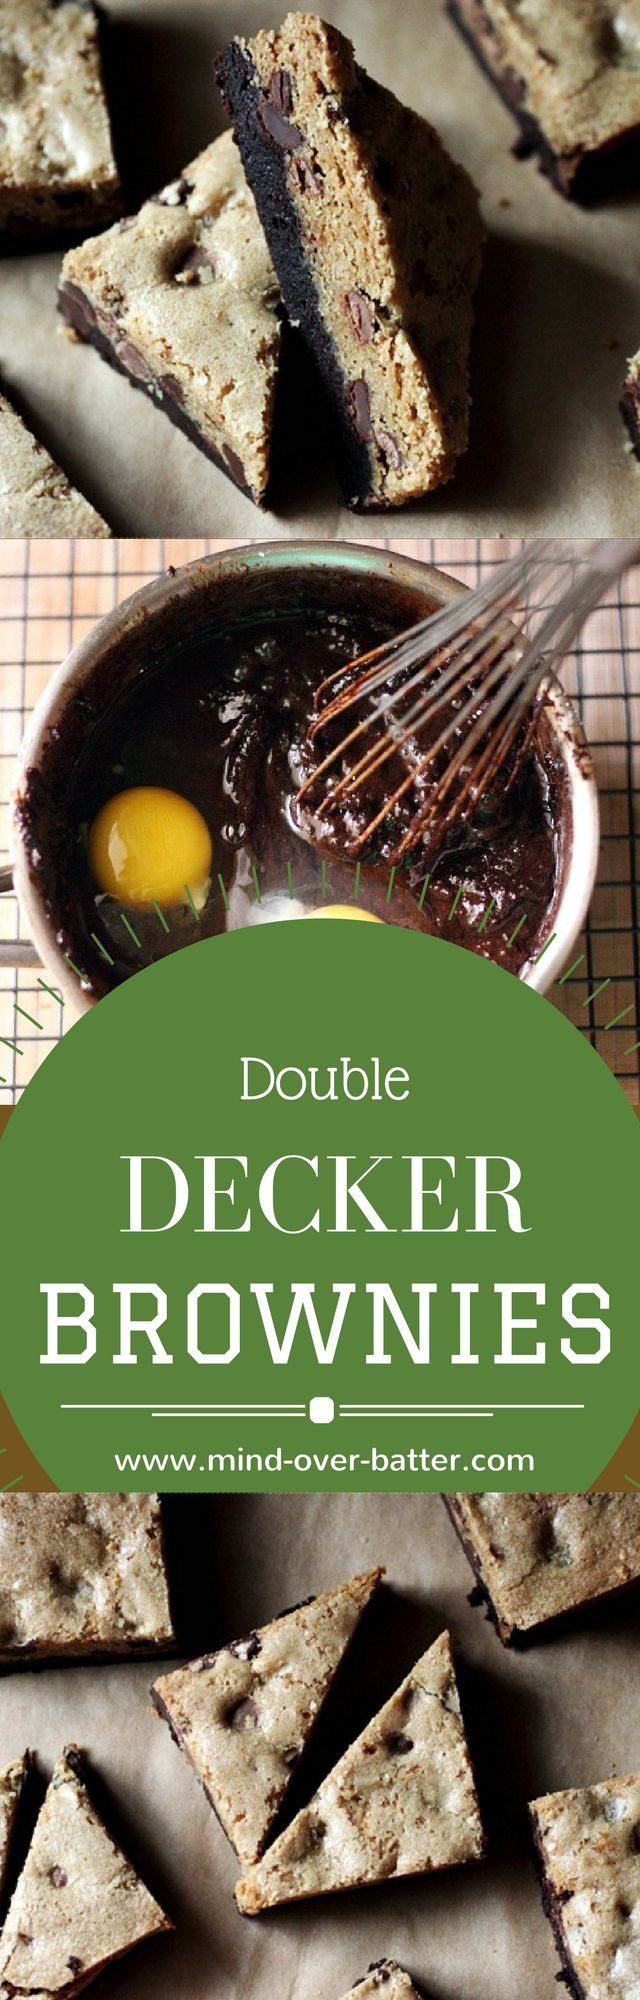 Double Decker Brownies! A moist fudgy brownie bottom layer and a buttery brown sugar top layer studded with semi-sweet chocolate chips. Trust. There is no better brownie! www.mind-over-batter.com